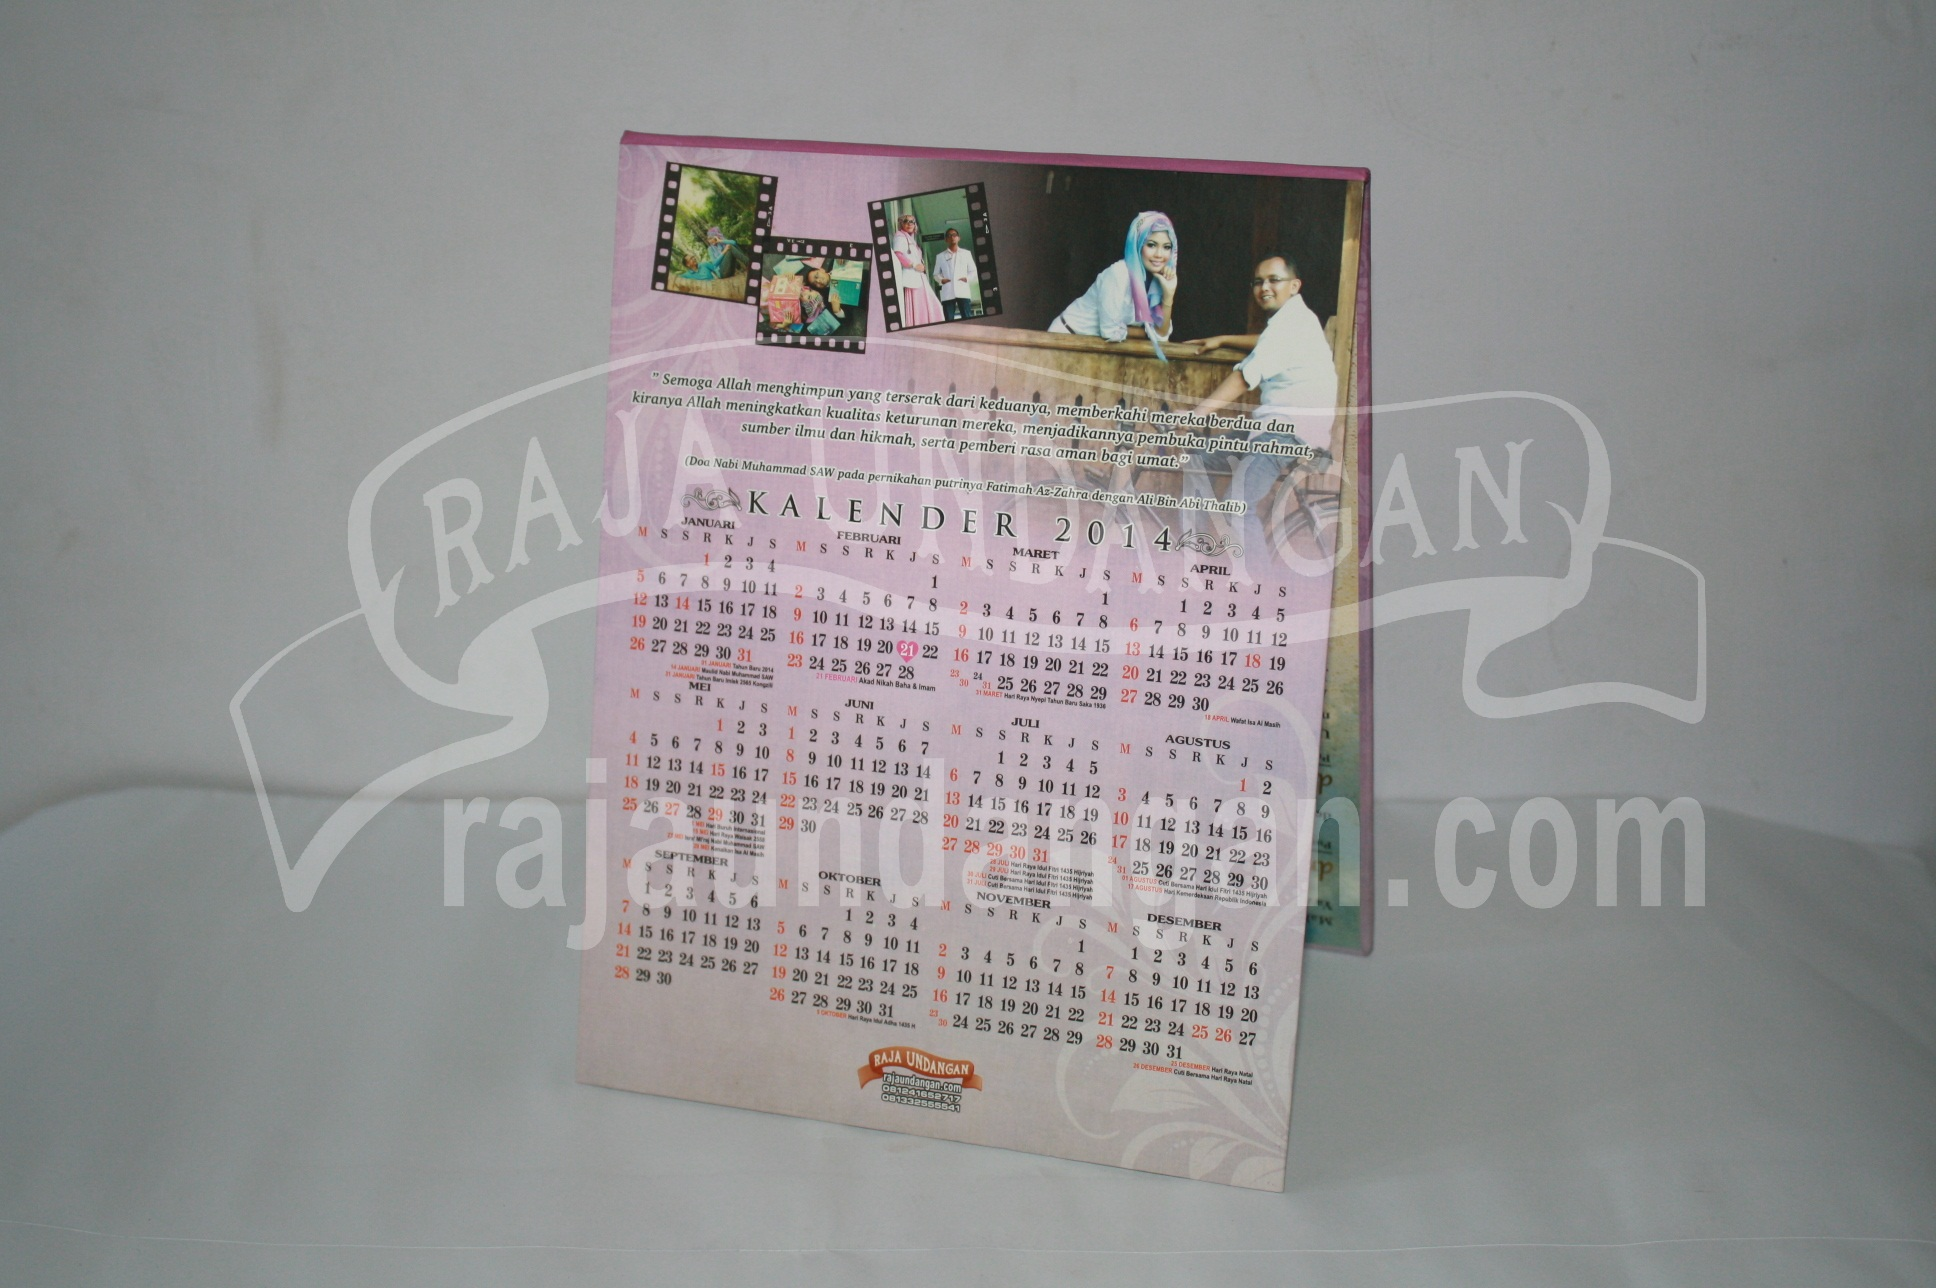 Undangan Pernikahan Hardcover Pop Up 3D Baha dan Imam EDC 49 4 - Pesan Wedding Invitations Murah di Warugunung